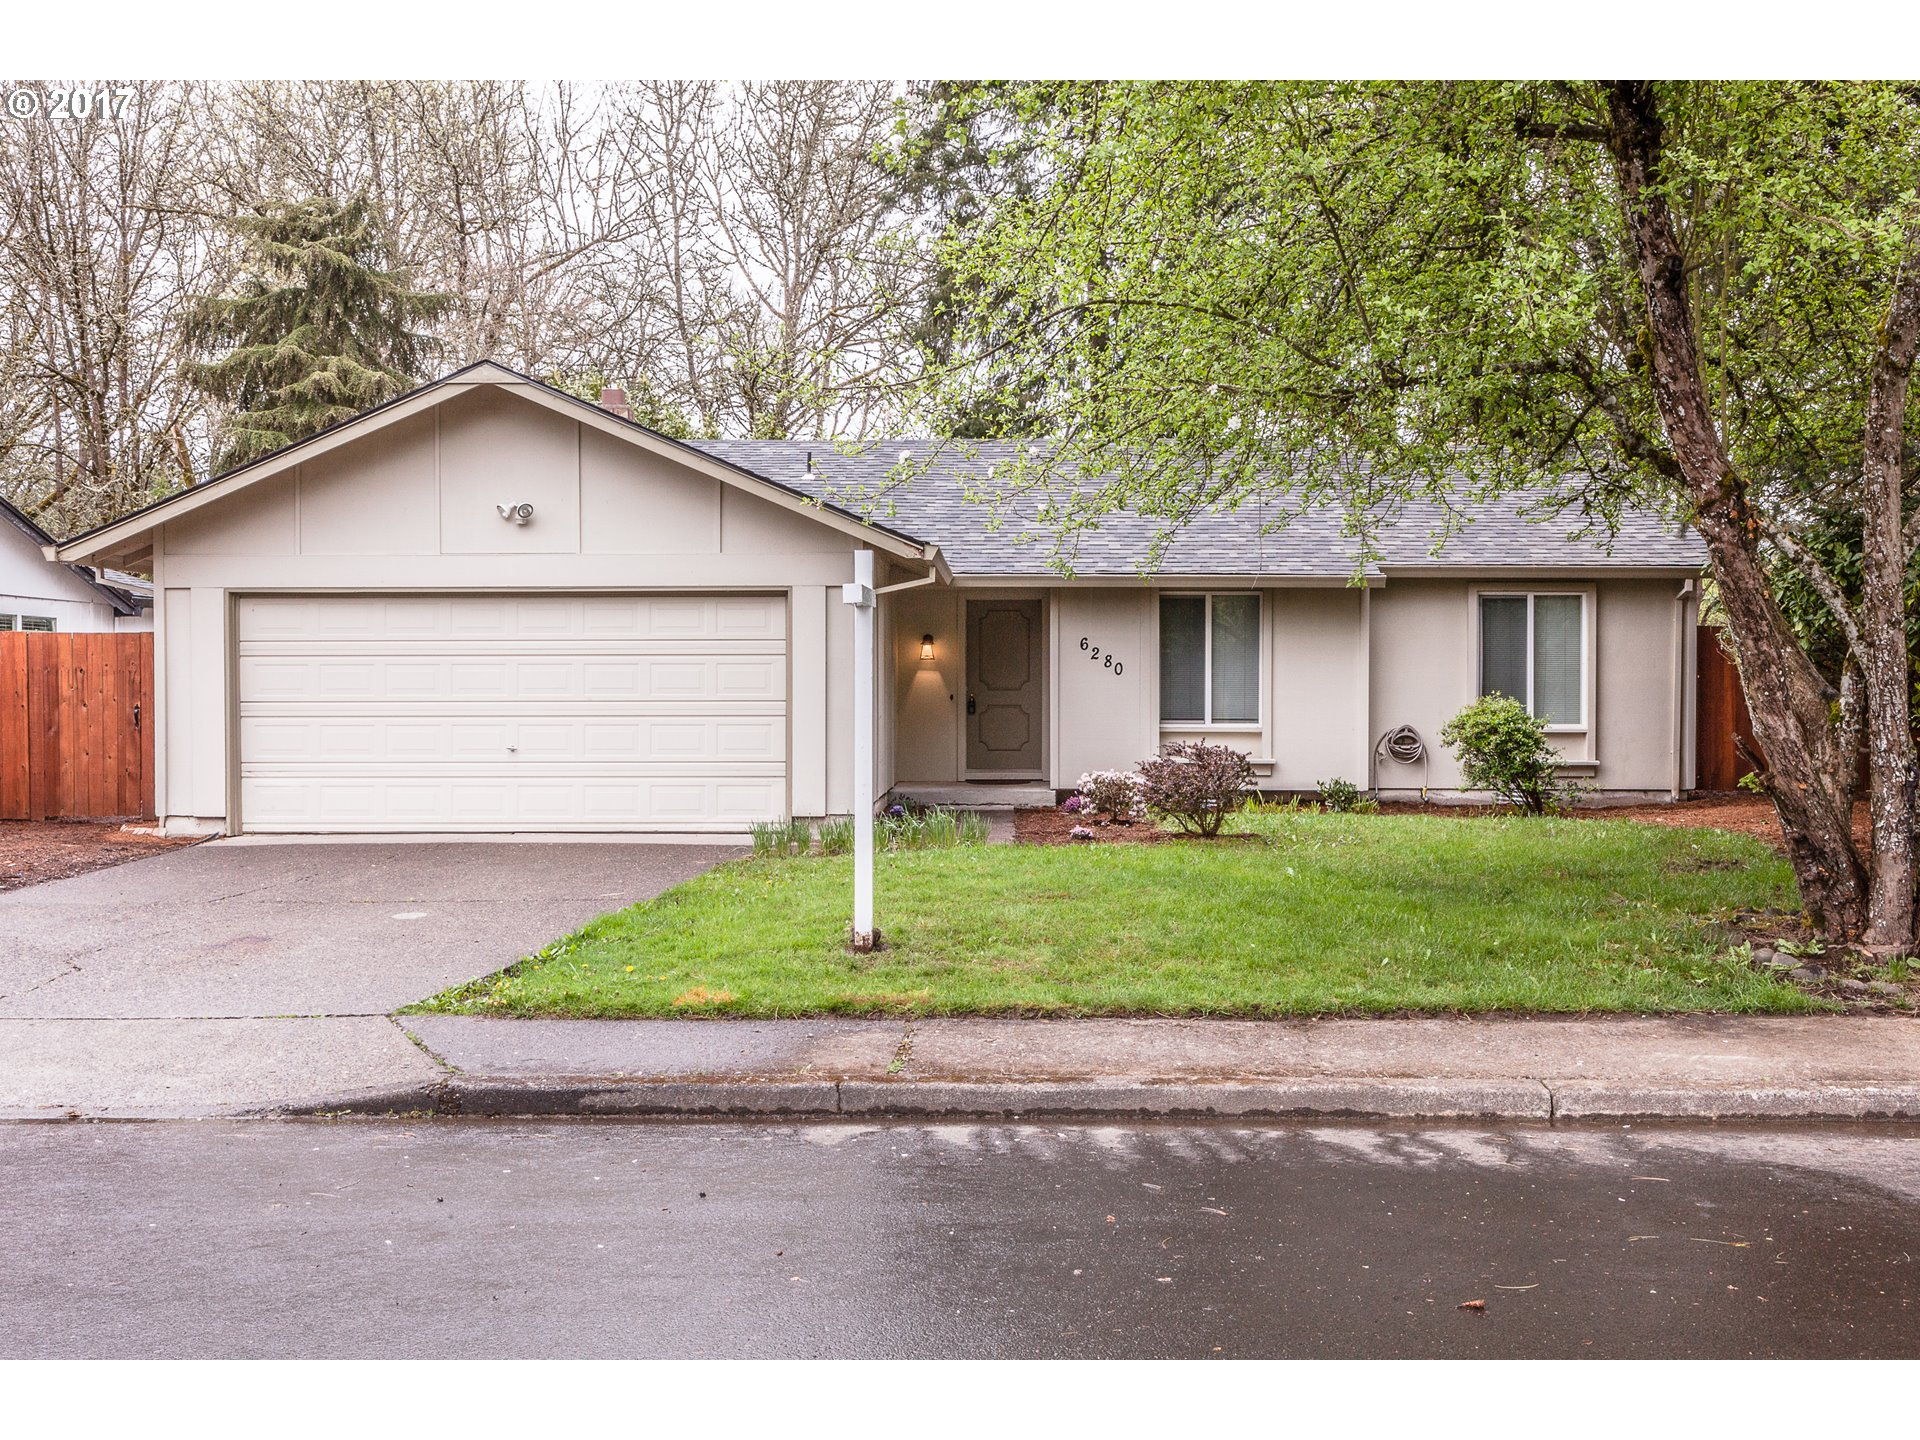 6280 SW 196TH AVE Beaverton, OR 97078 17117314